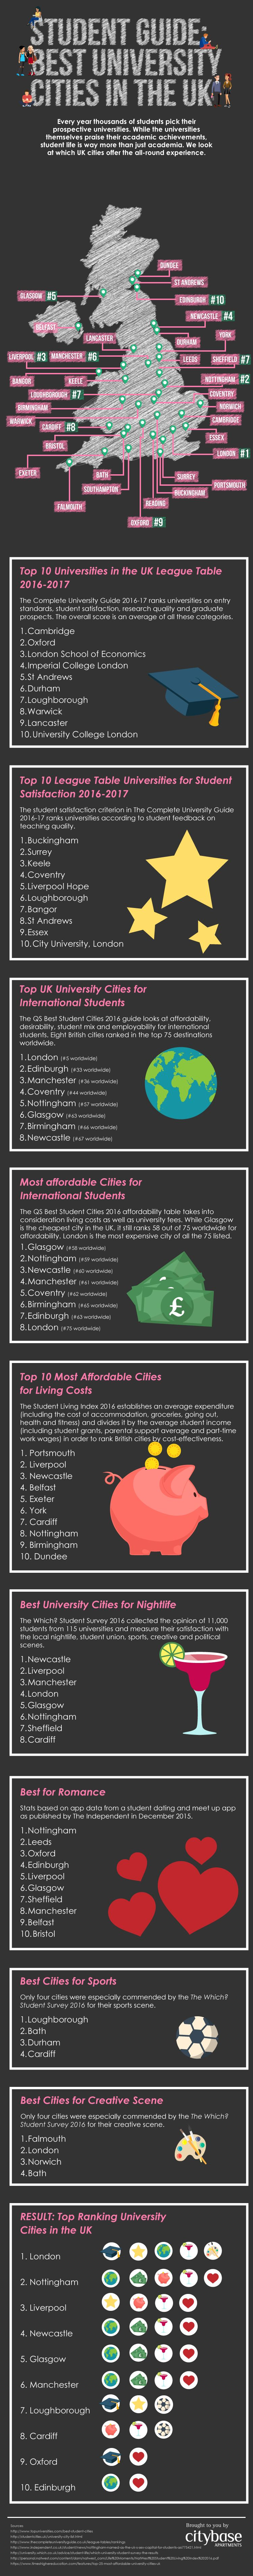 Top 10 University Cities in the UK